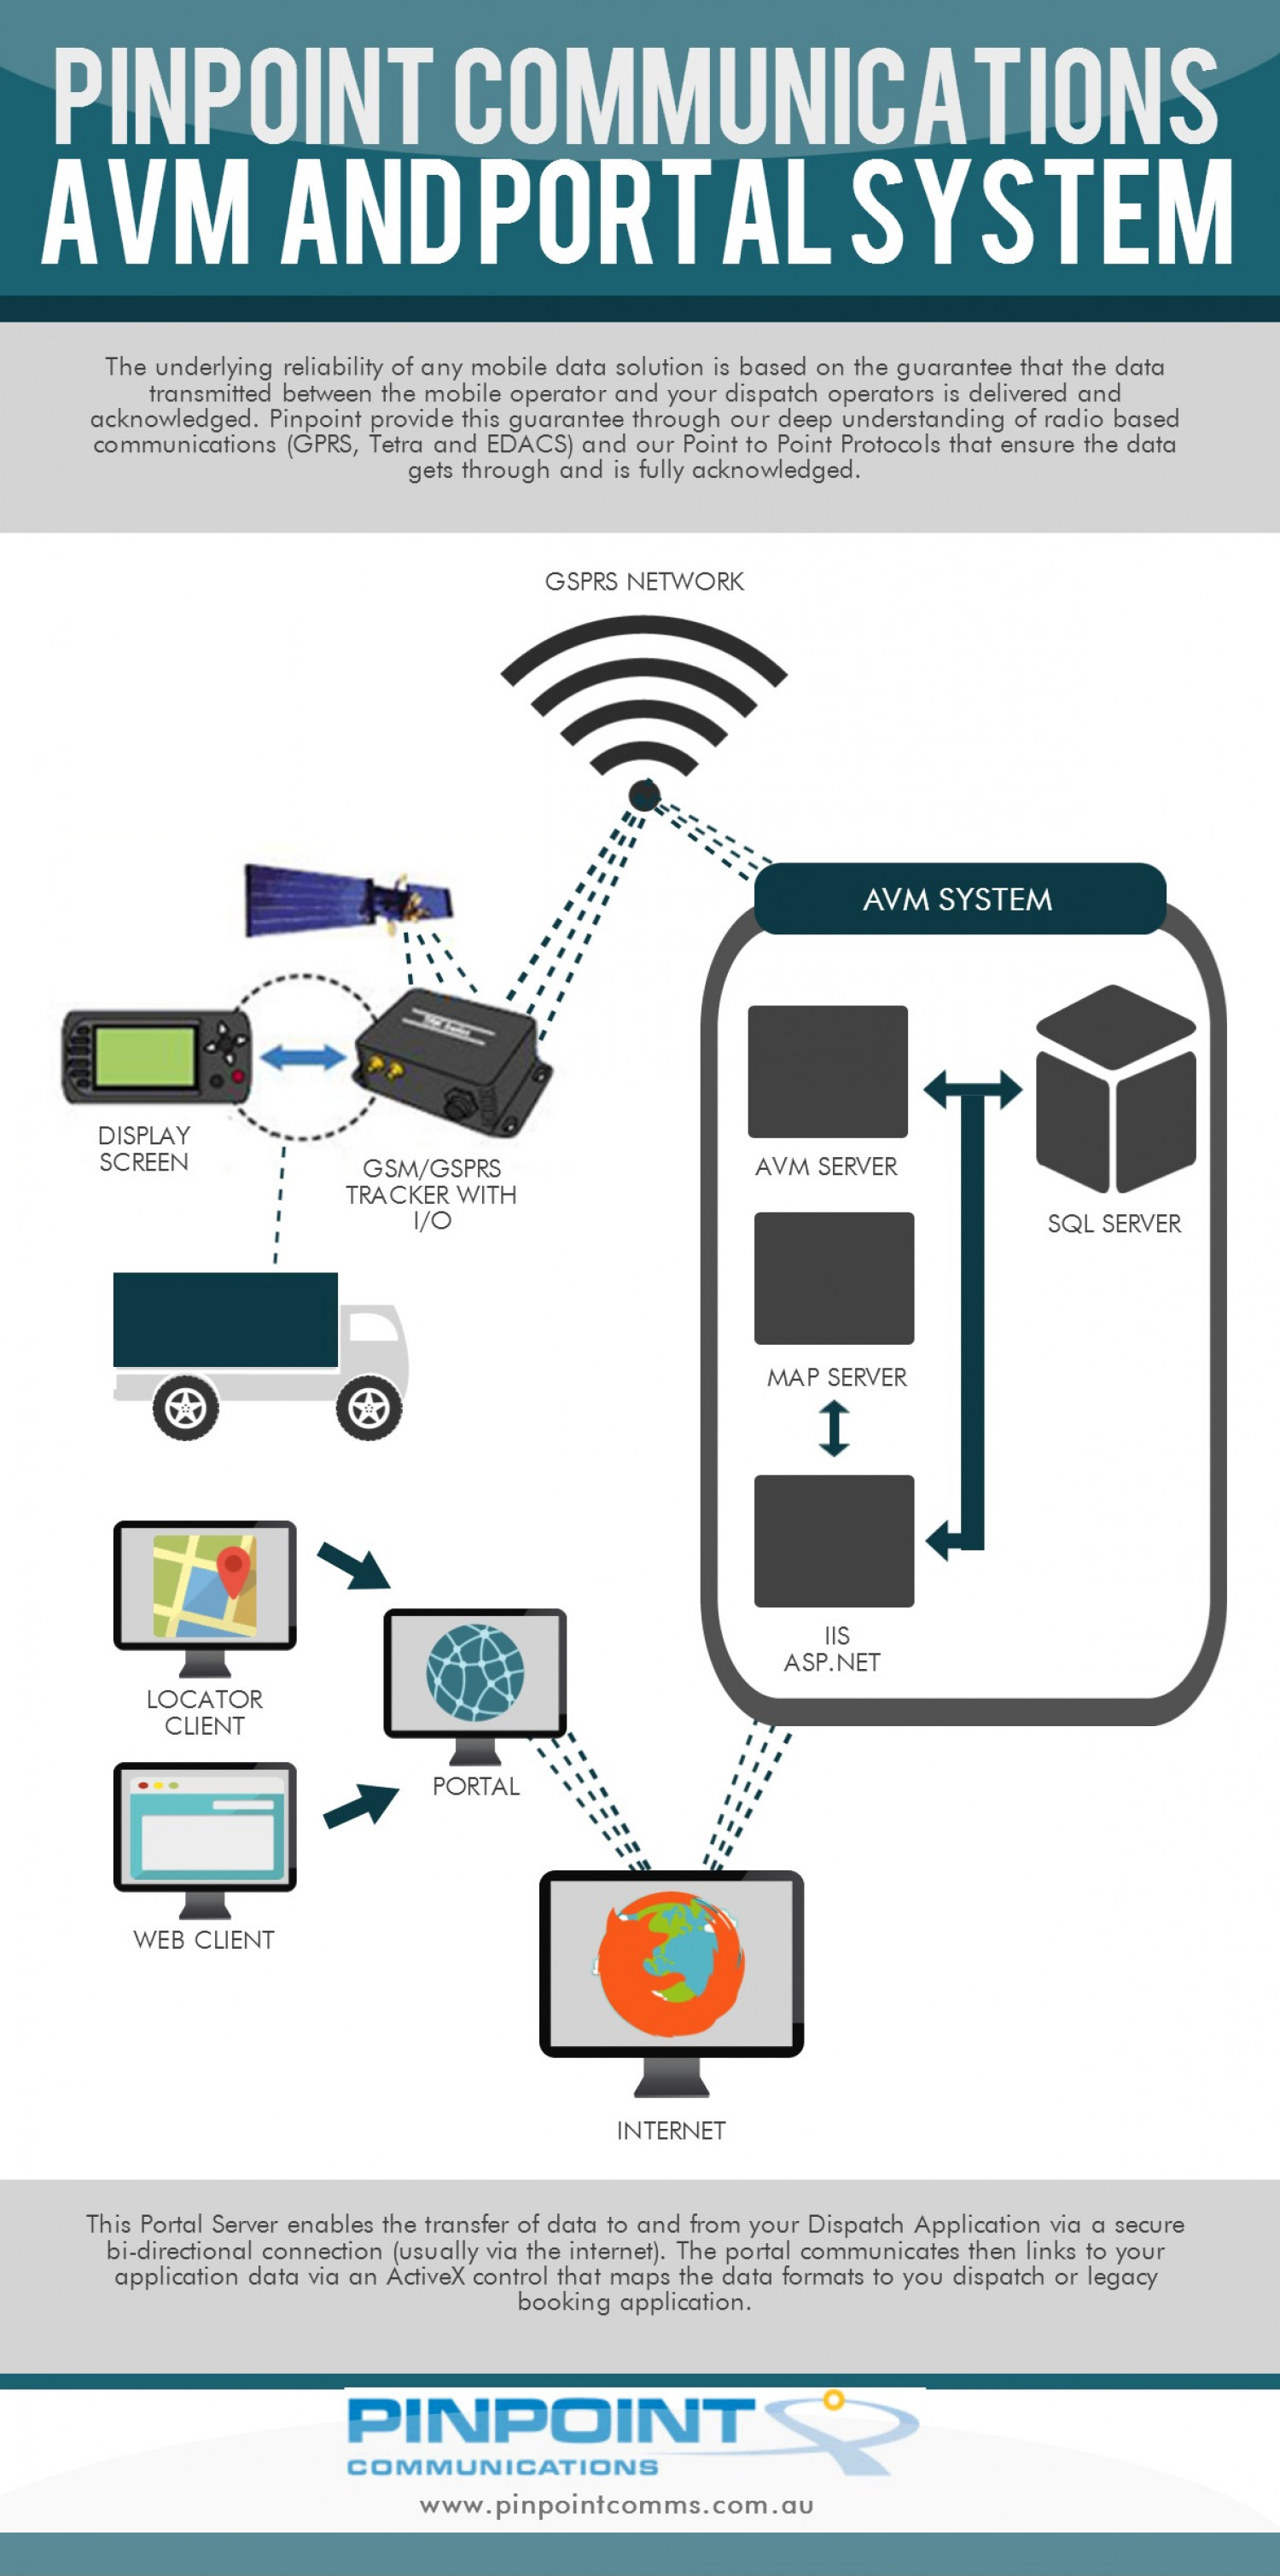 AVM and Portal System - Pinpoint Communications Infographic